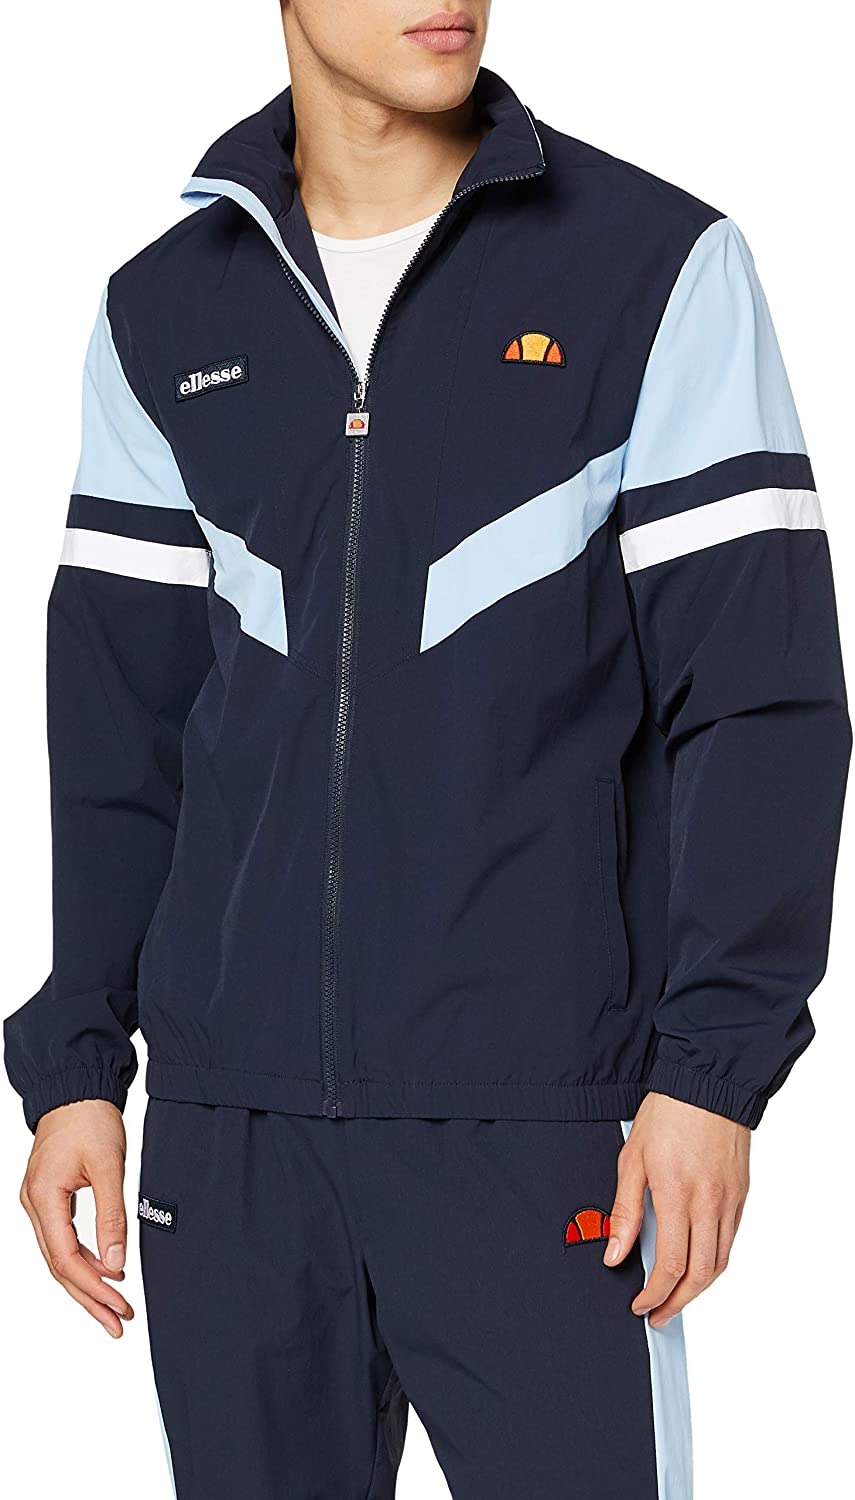 ellesse Men's Oscuro Track Jacket, Blue